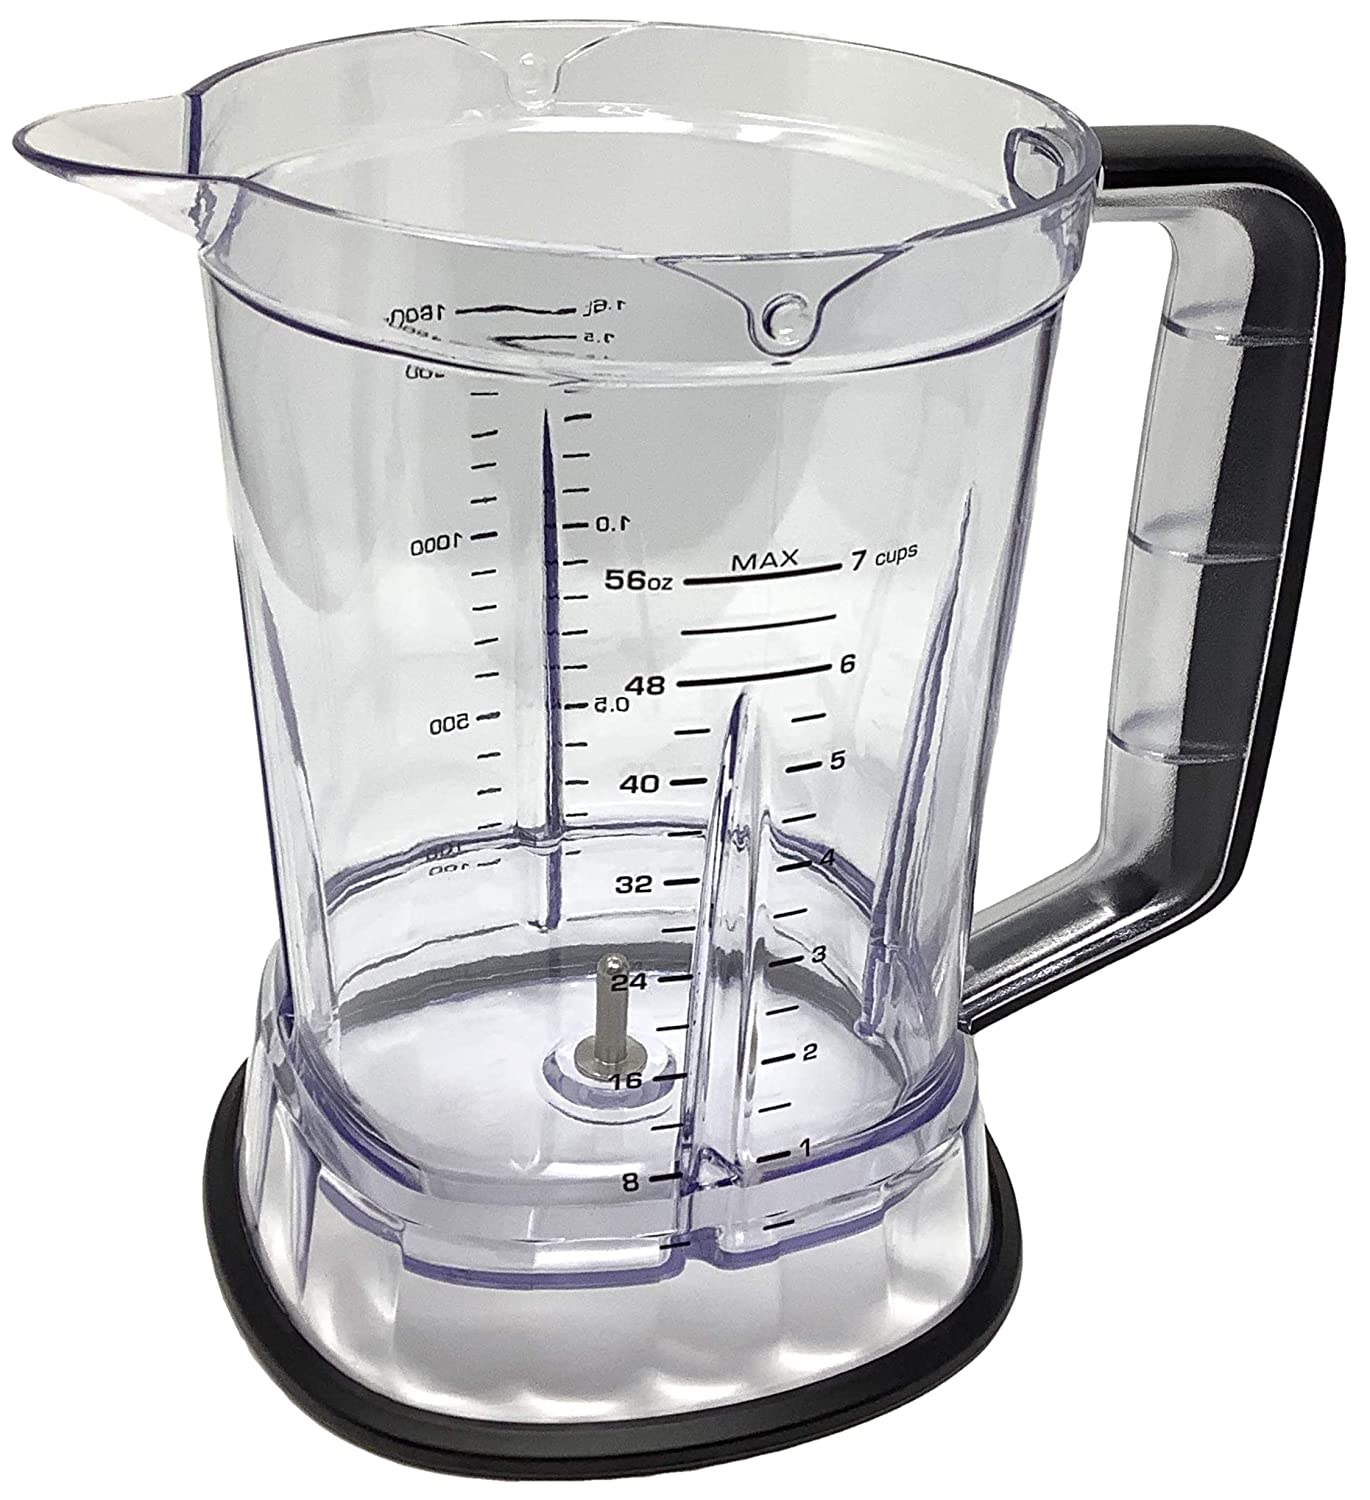 Genuine Ninja 56oz Pitcher Cup for QB3000 QB3004 QB3005 Nutri 2-in-1 Blender